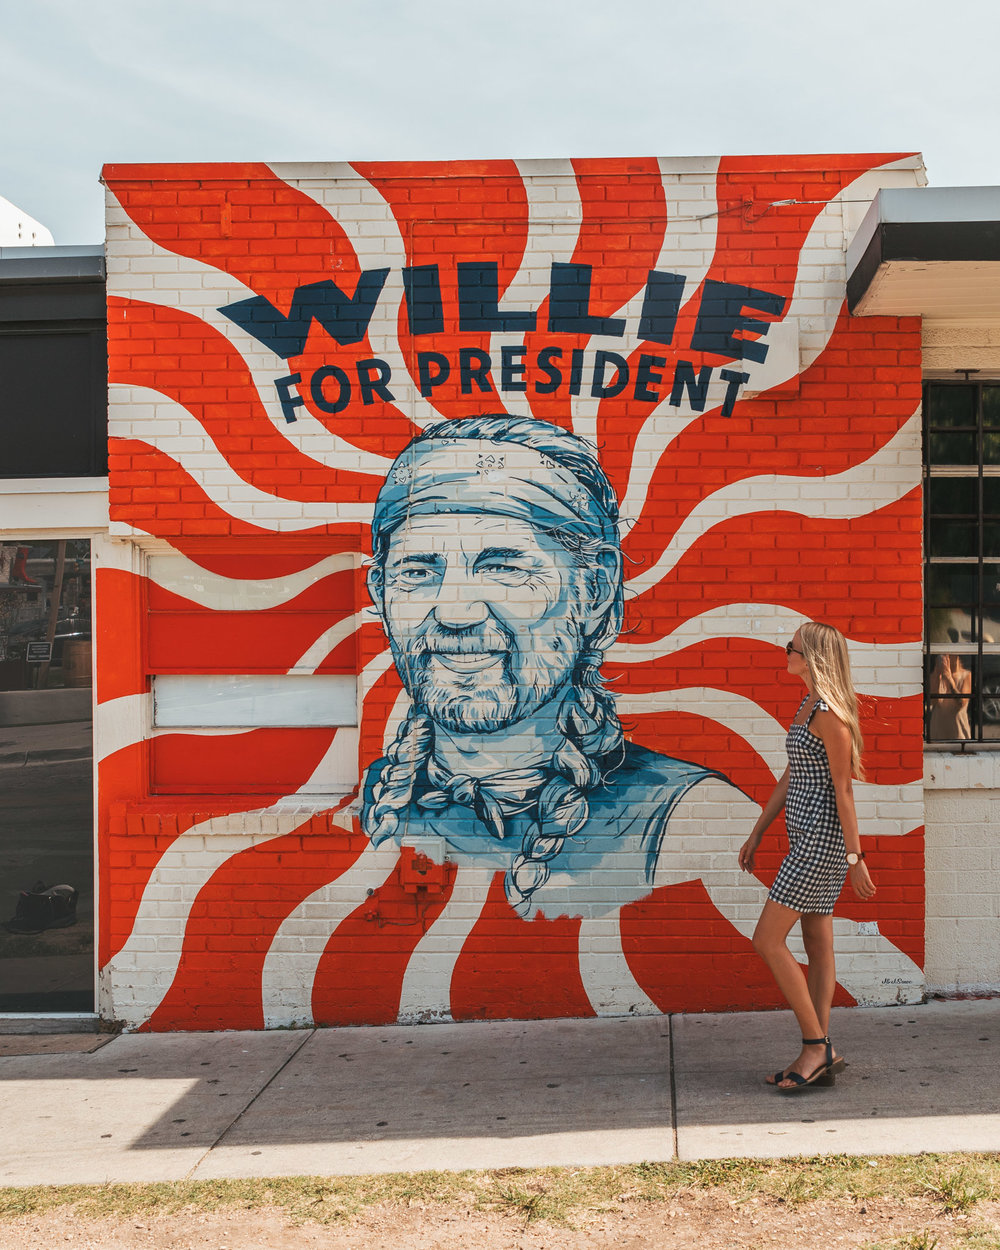 Willie For President Mural on South Congress